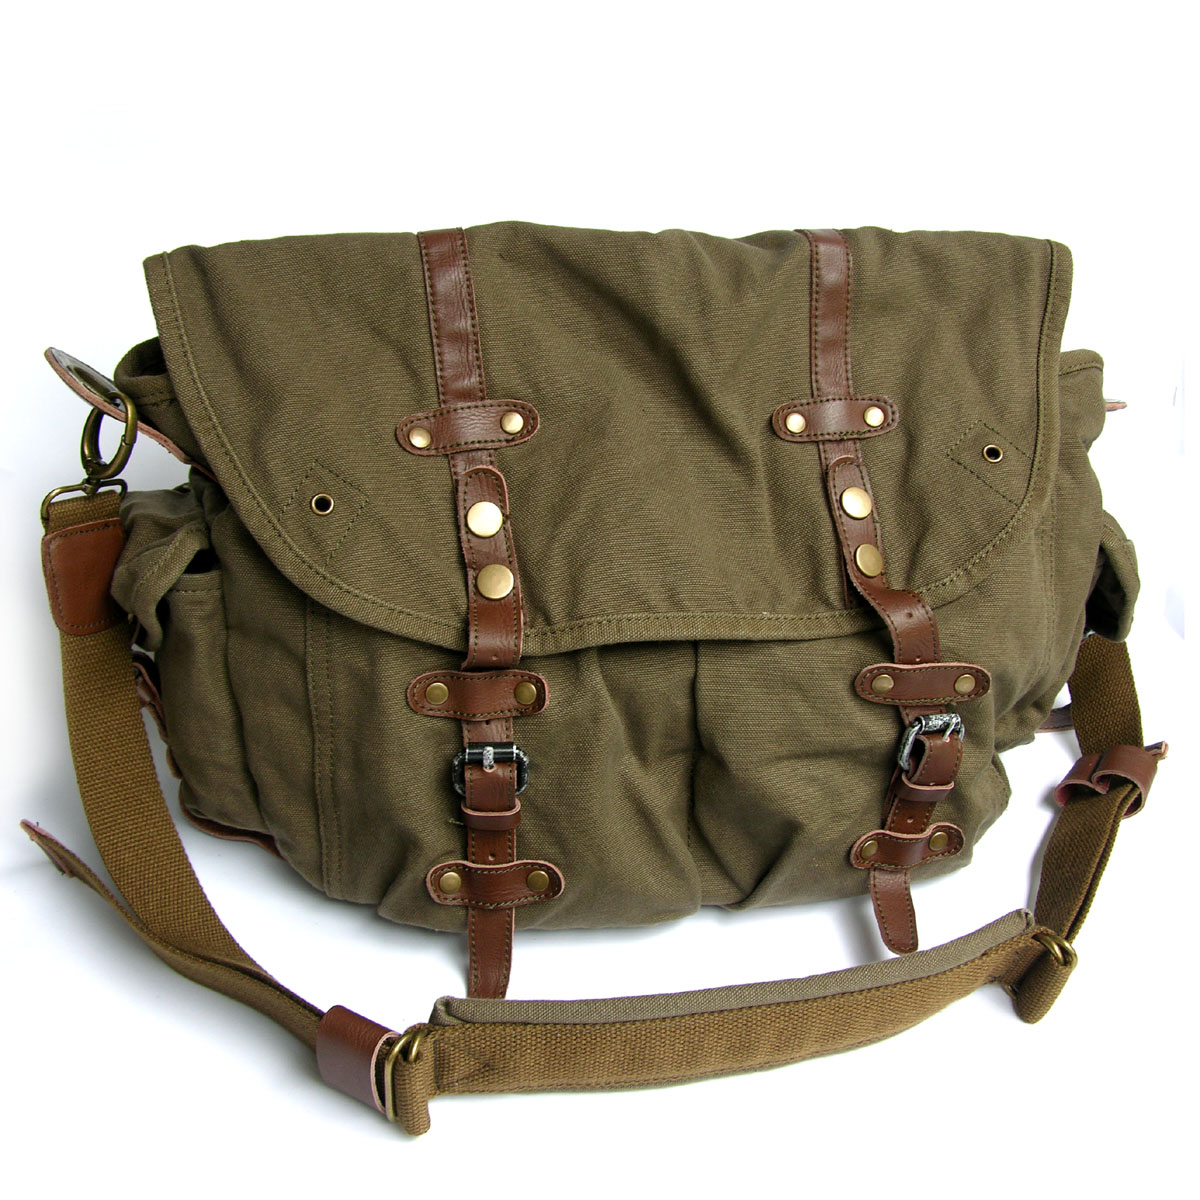 41f26f8a8bf8 Newsboy Bag   Satchel. 2810-17-.jpg